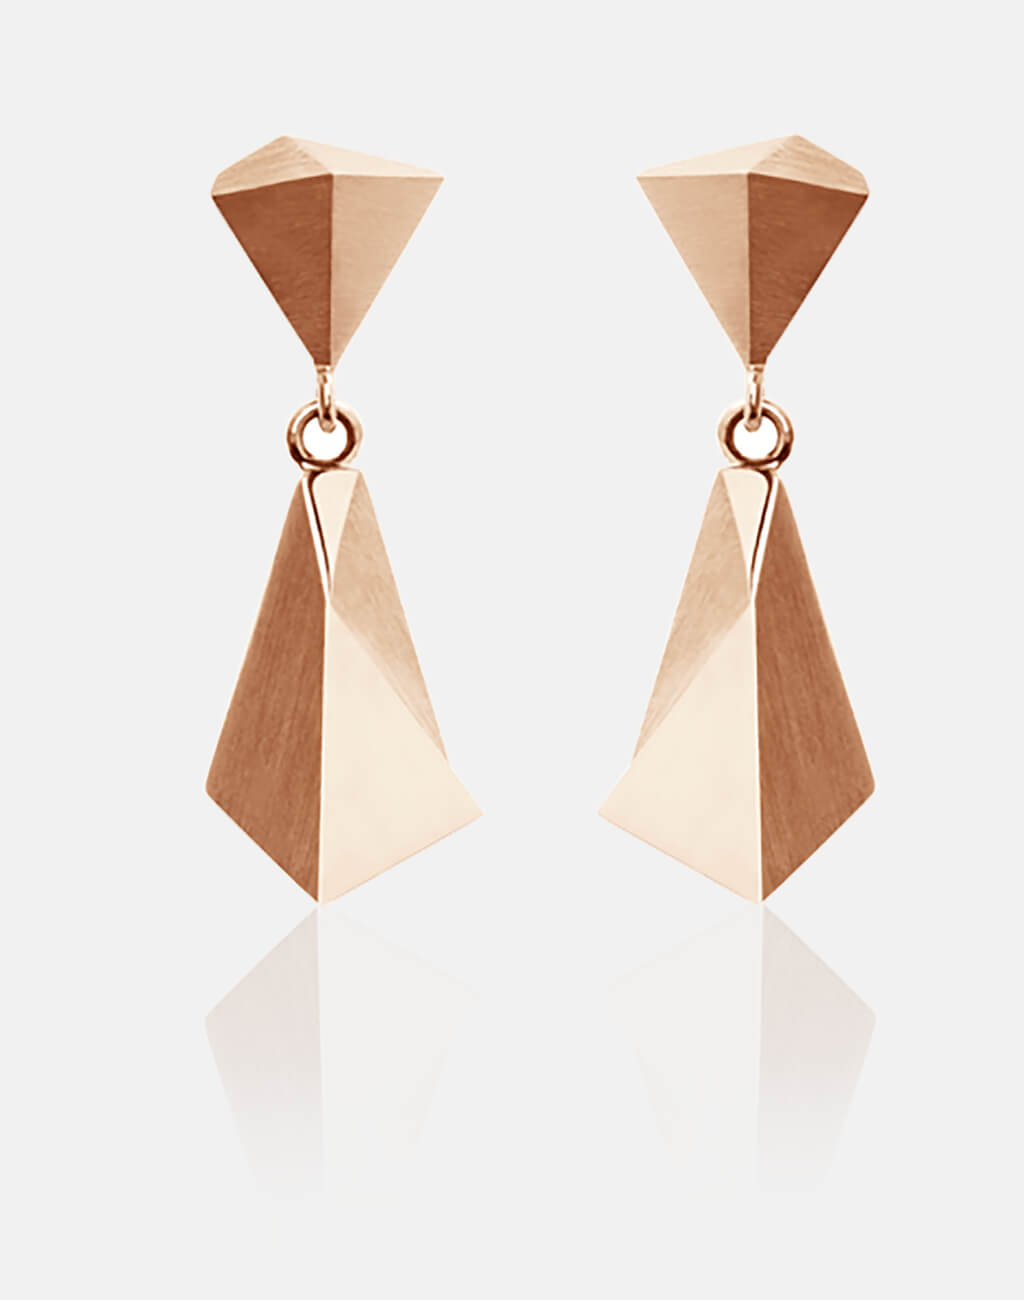 Stealth | Ohrringe, Ohrhänger 750/- Rosegold | earrings, ear studs 18kt rose gold | SYNO-Schmuck.com